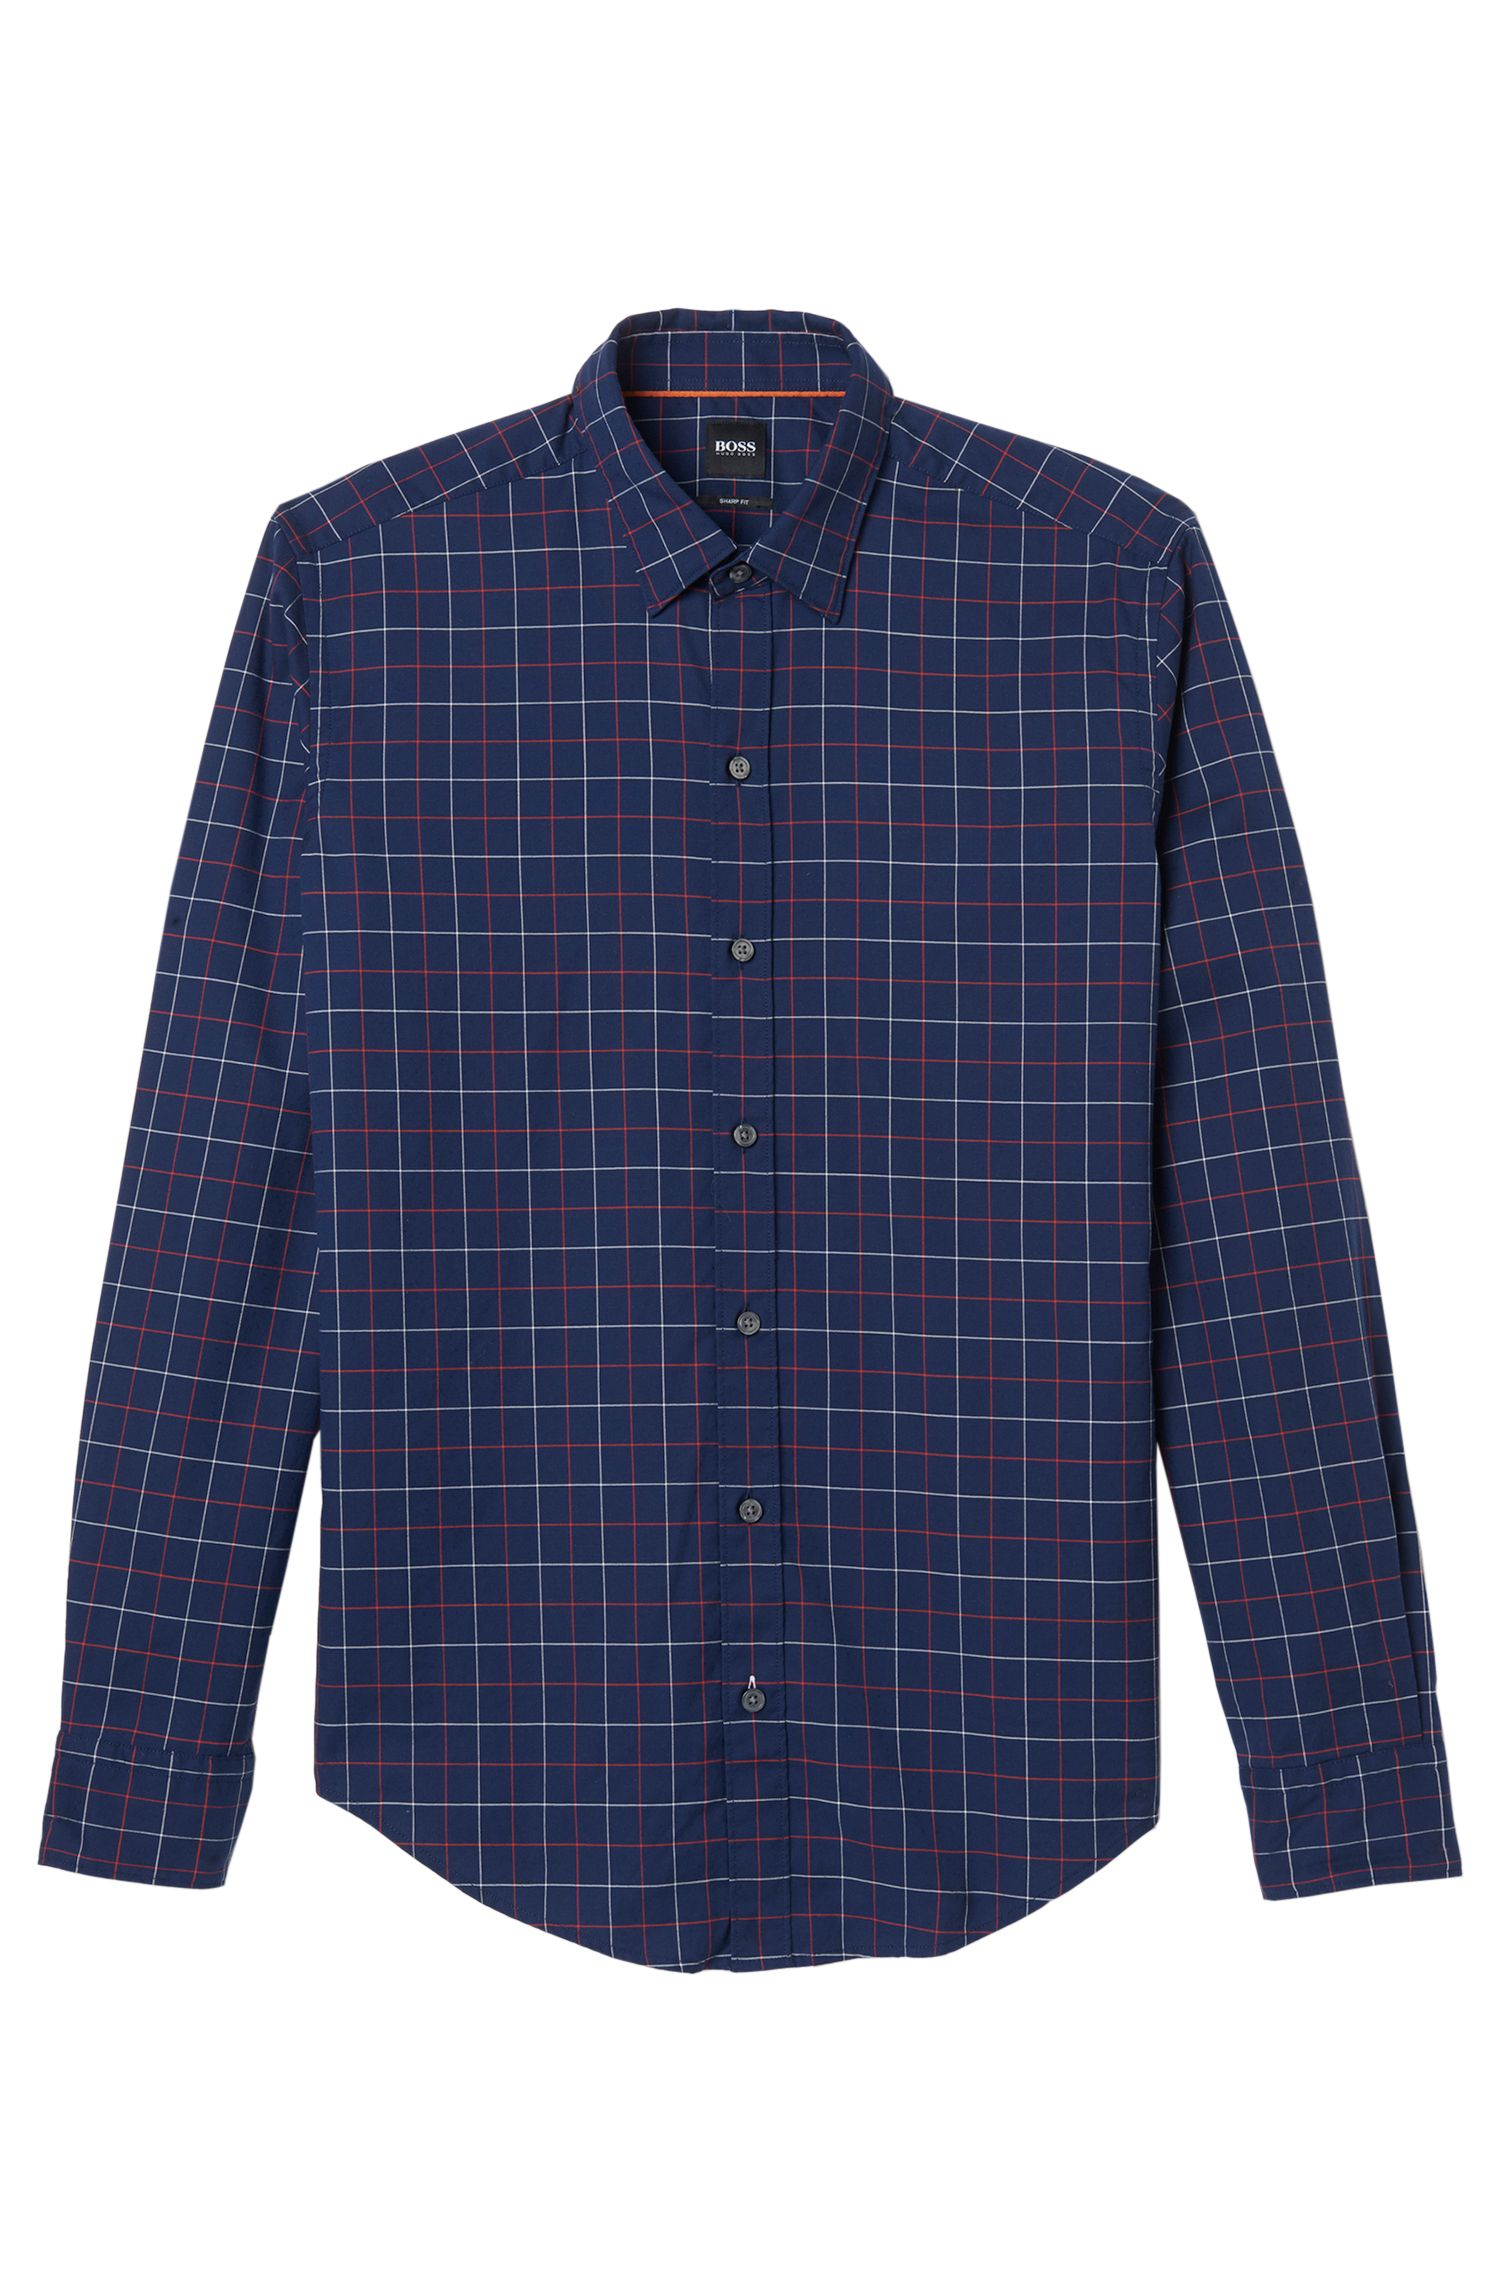 Plaid Cotton Sport Shirt, Sharp Fit  | Robbie